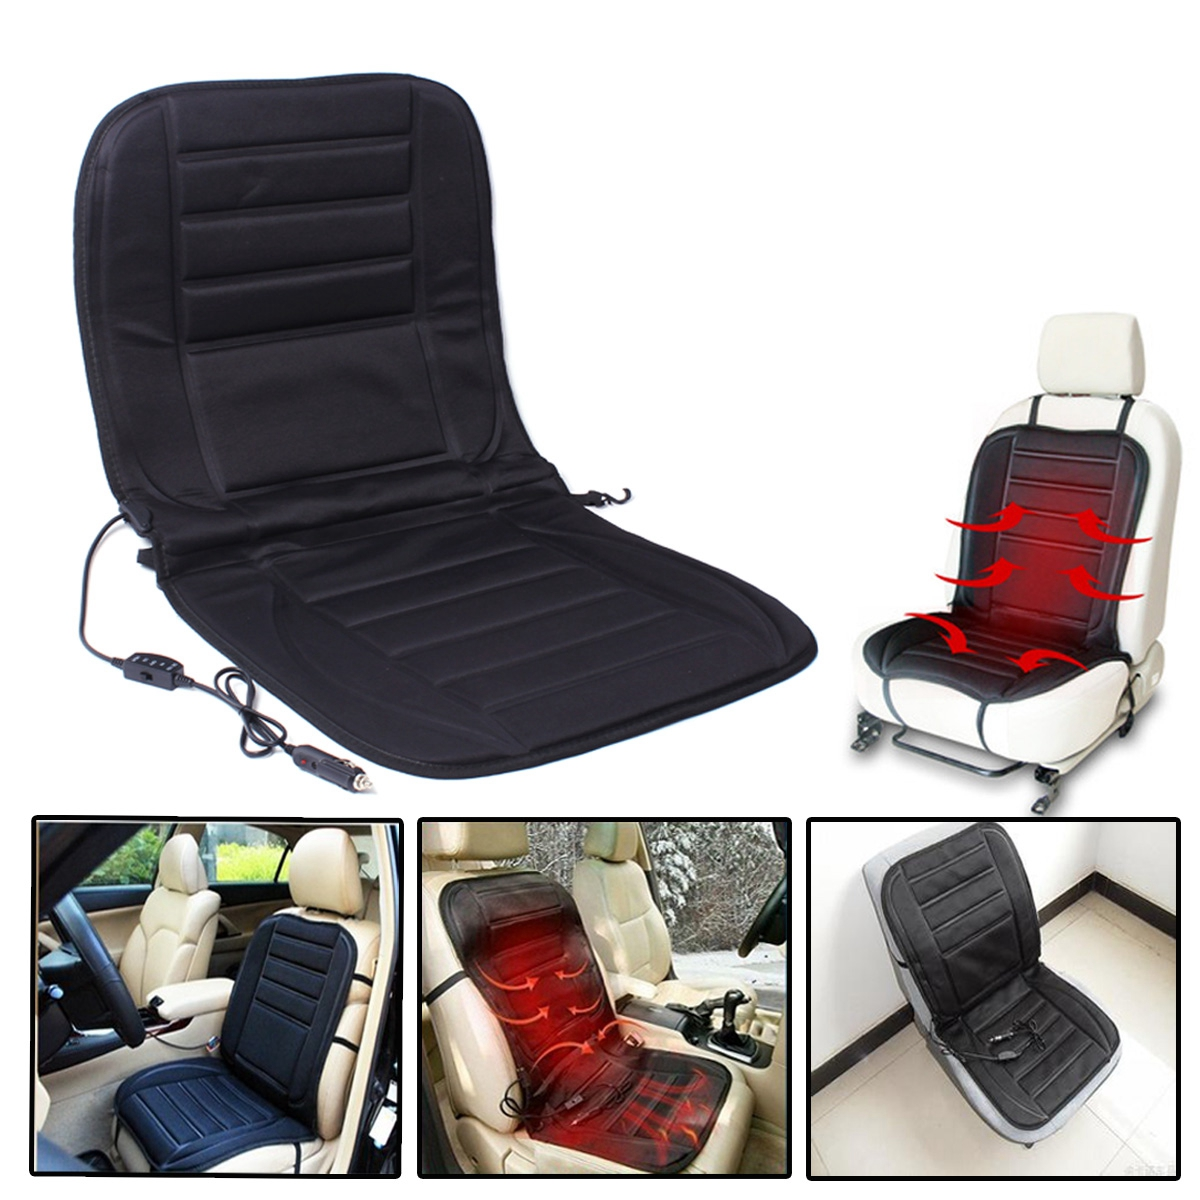 12V Car Auto Heated Padded Pad Hot Seat Cushion Cover Warmer SKU107143